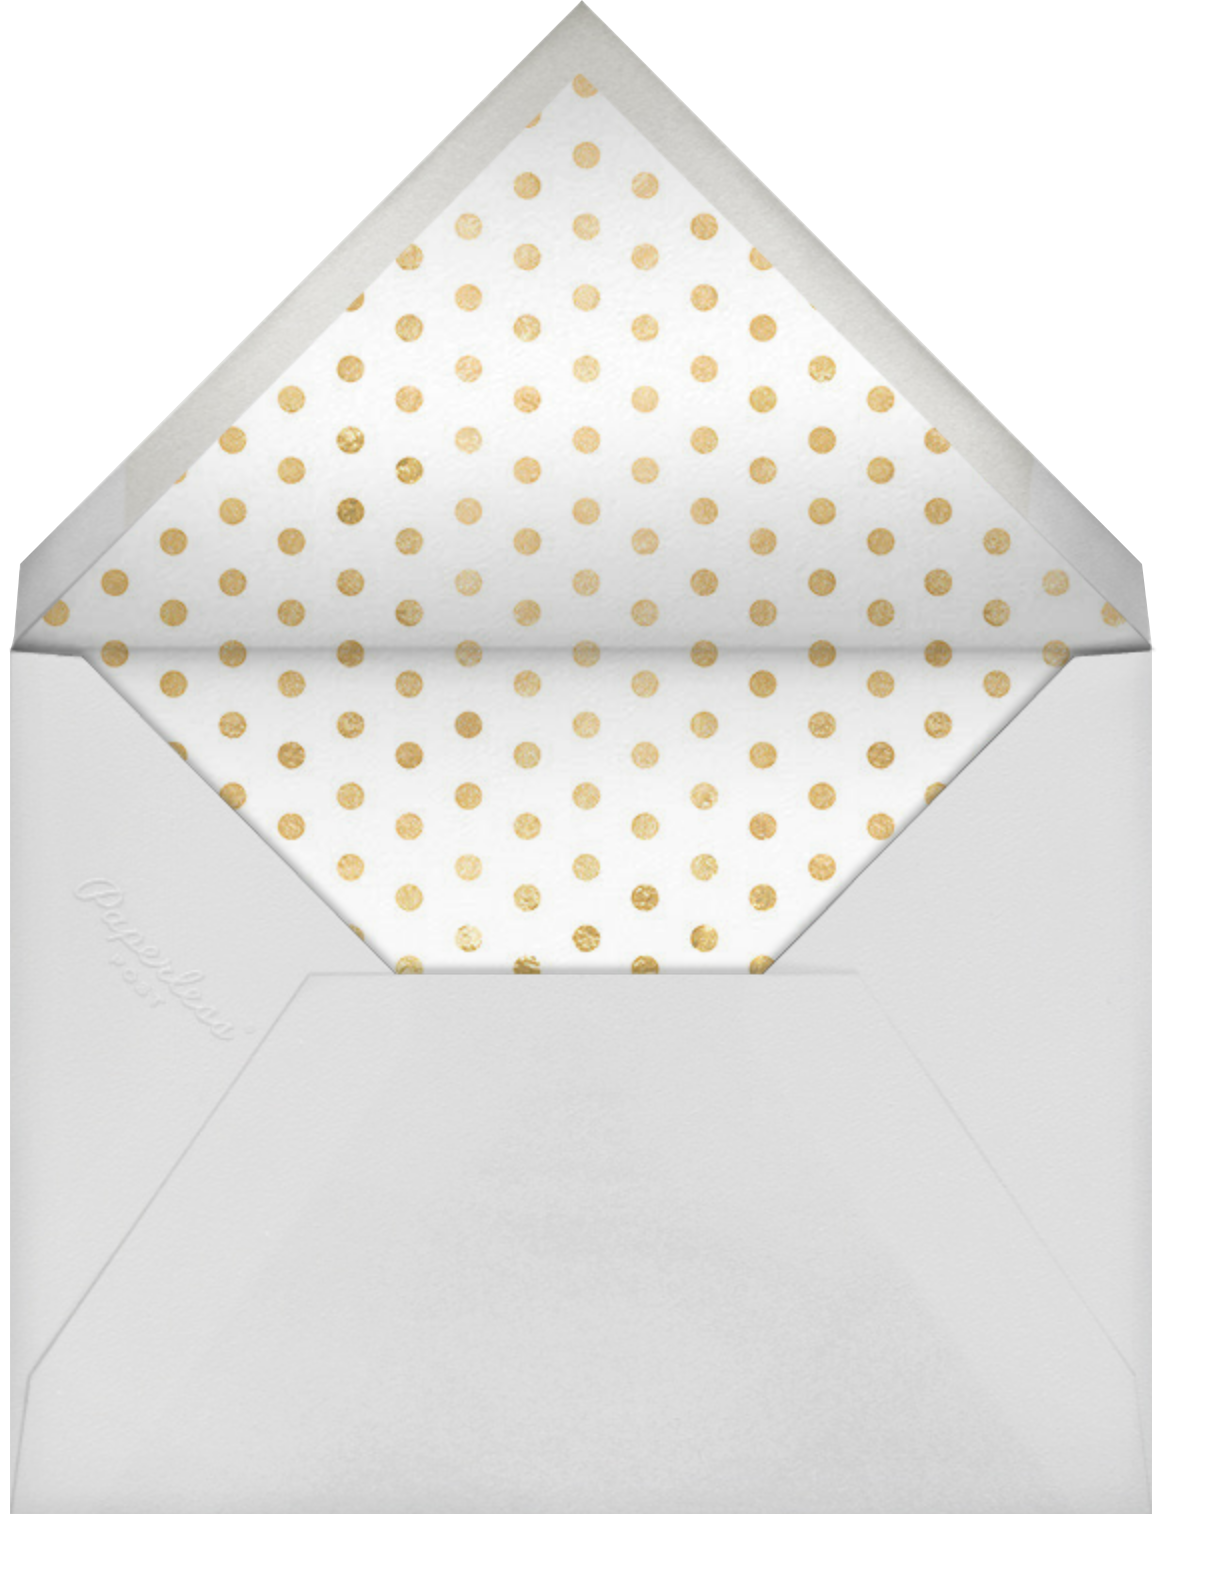 Champagne Tower - Rifle Paper Co. - General entertaining - envelope back